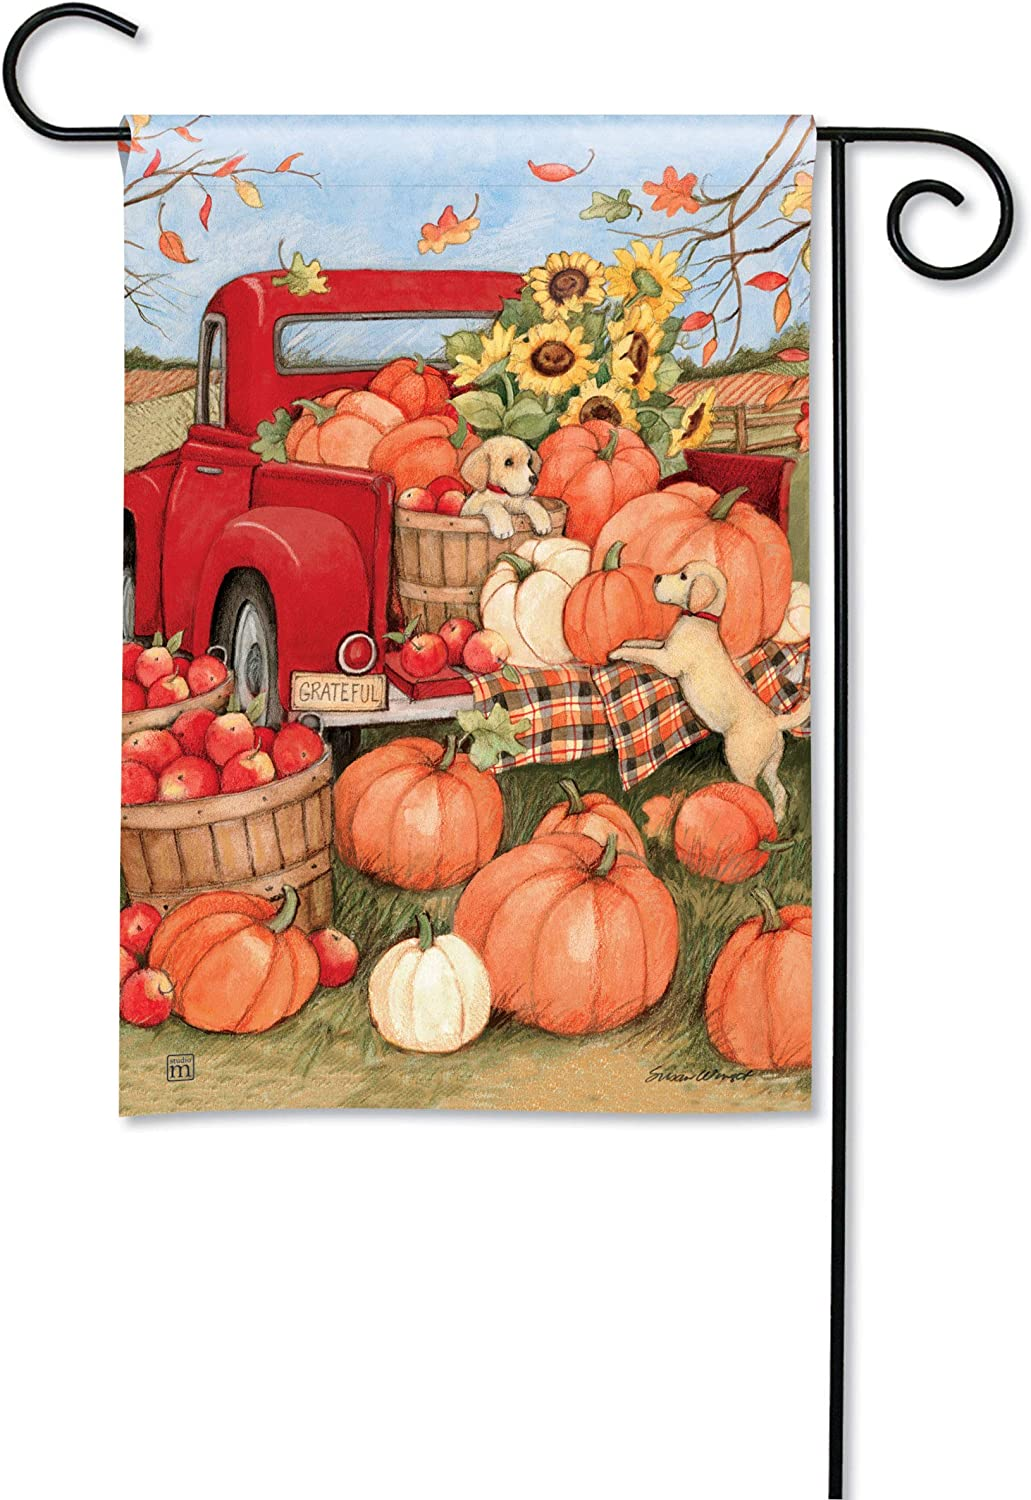 BreezeArt Studio M Pumpkin Delivery Fall Harvest Garden Flag - Premium Quality, 12.5 x 18 Inches